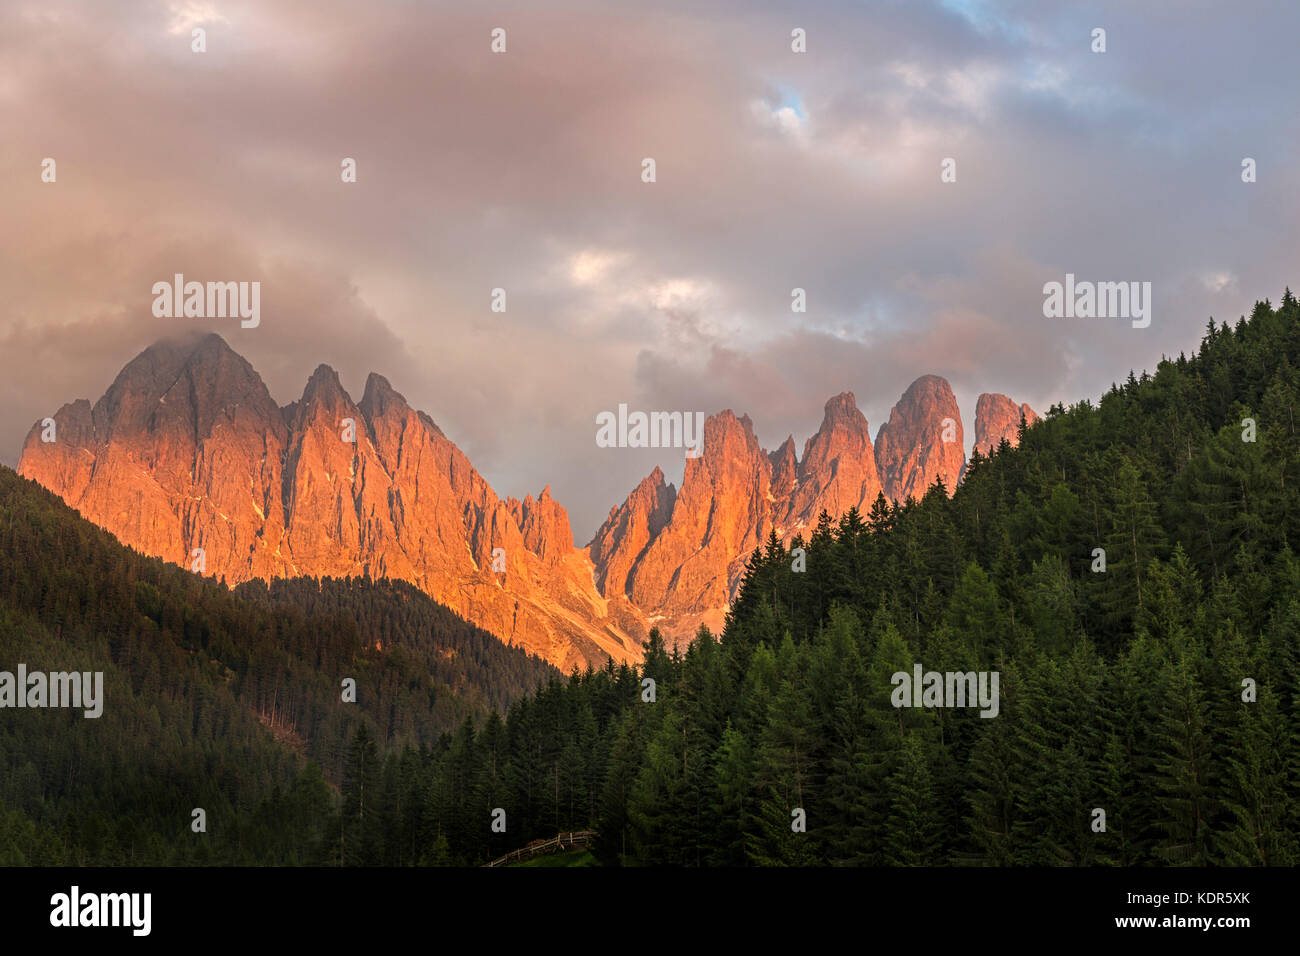 Mountain mass Geisler groupe at sunset, Villnöss valley, Dolomiti, South Tyrol, Italy, Europe - Stock Image